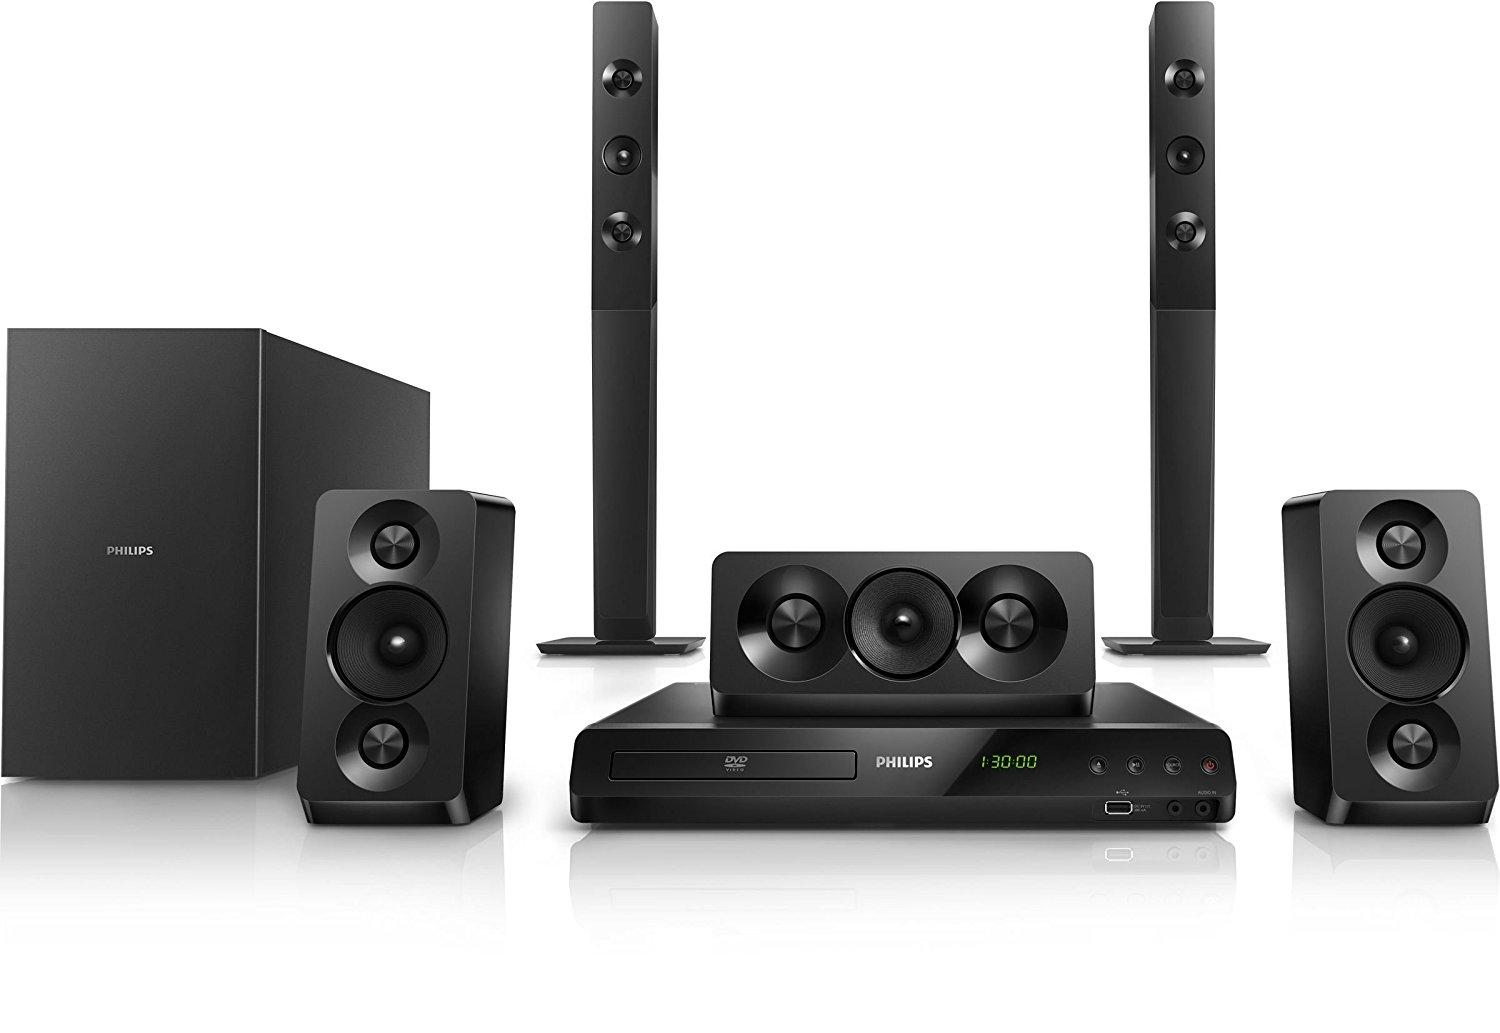 philips htd5550 94 home theatre electronics. Black Bedroom Furniture Sets. Home Design Ideas